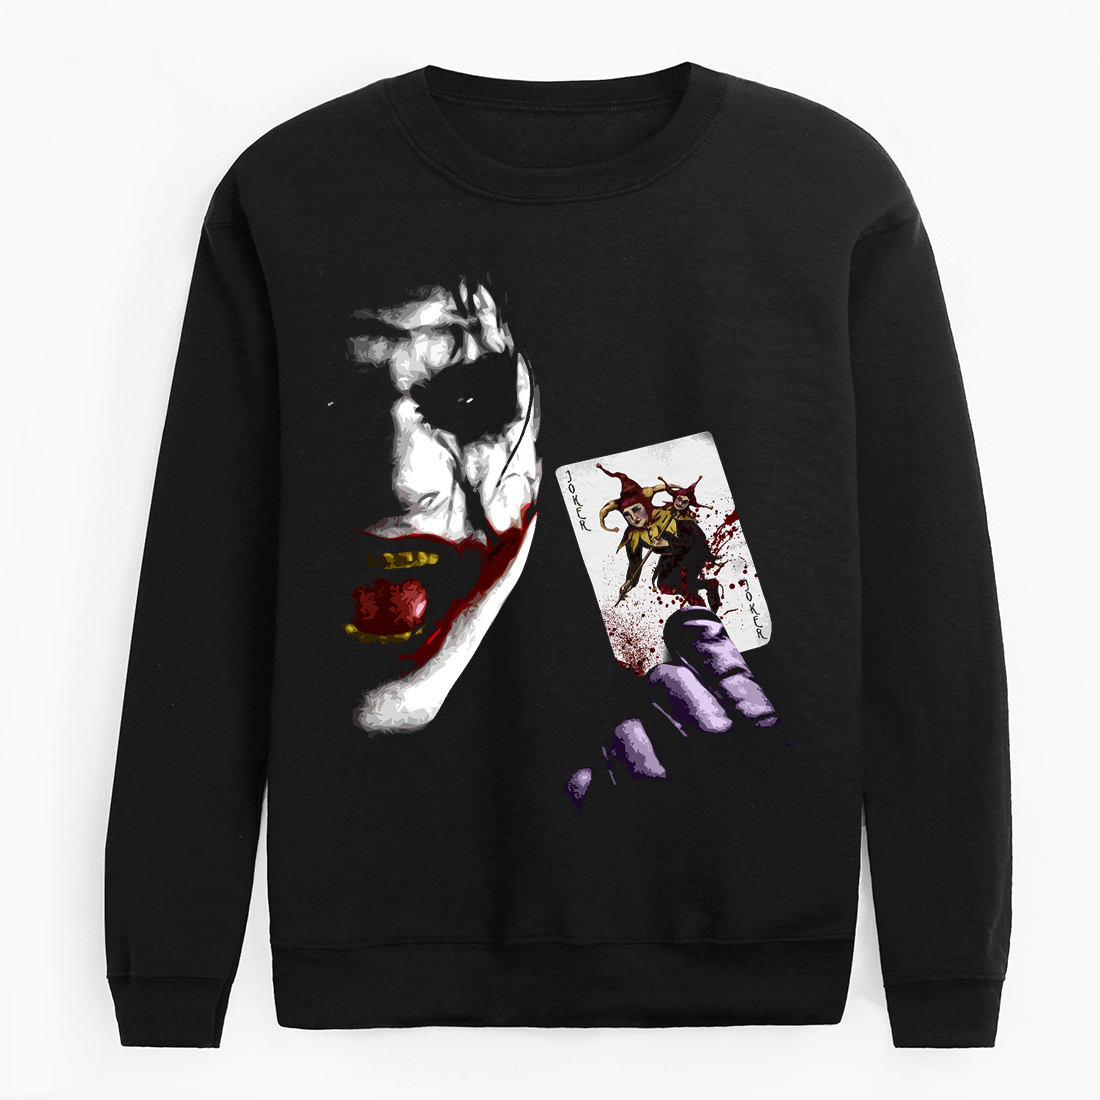 2020 New Arrival Long Sleeve Tracksuit Funny Joker Streetwear Sweatshirts Batman Hip Hop Fleece Brand Clothing Black Hoodies Men